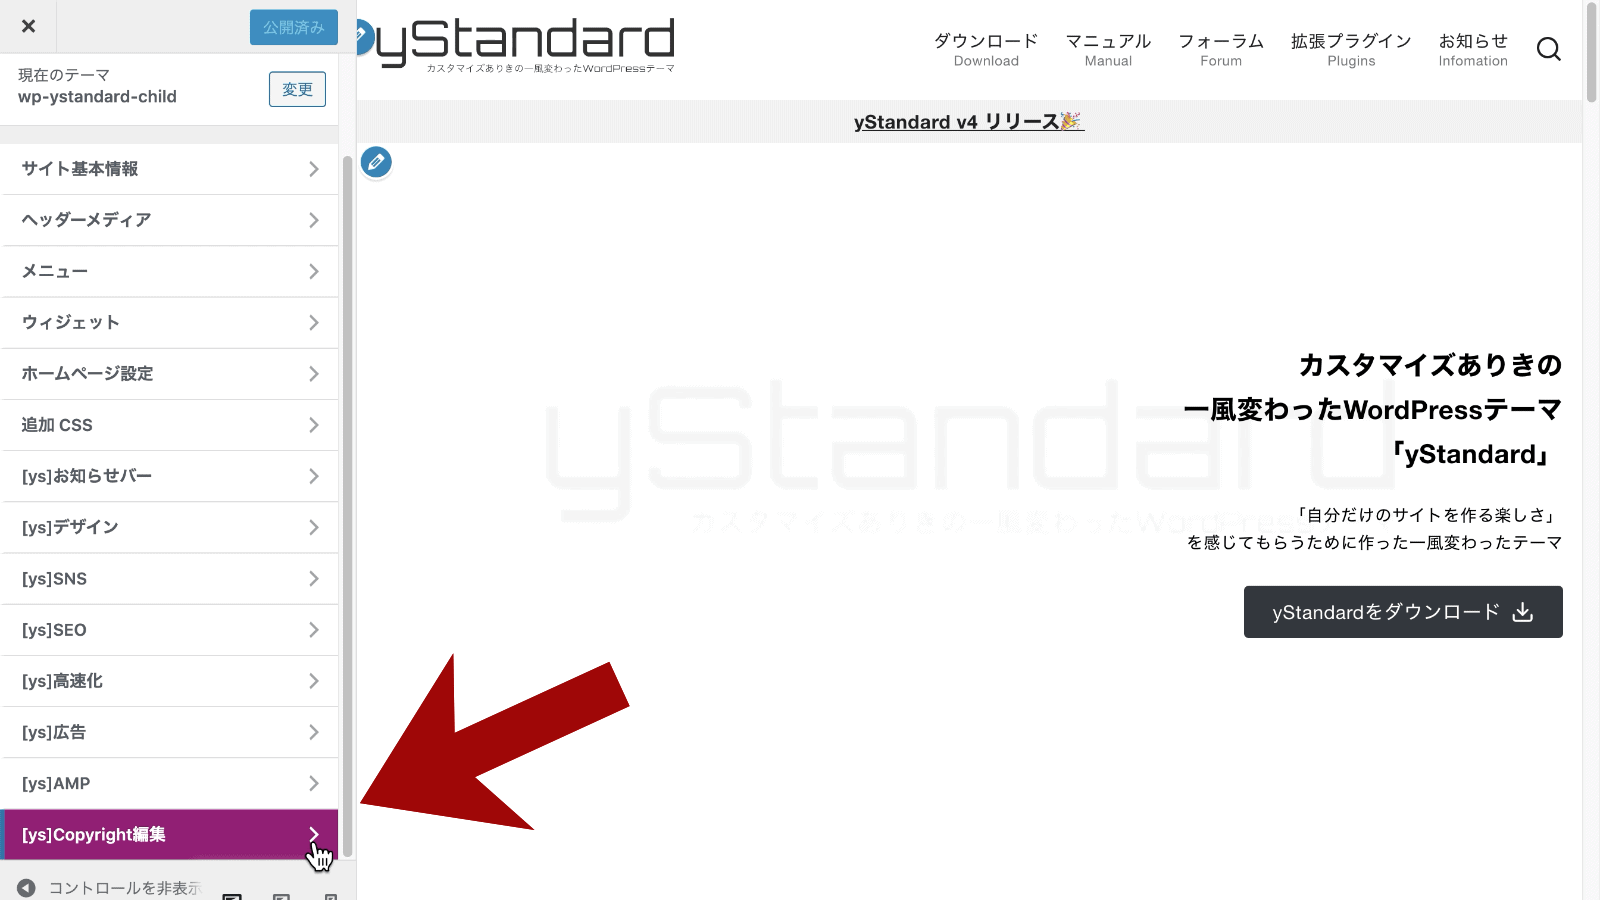 yStandard Copyright Customizerの設定画面